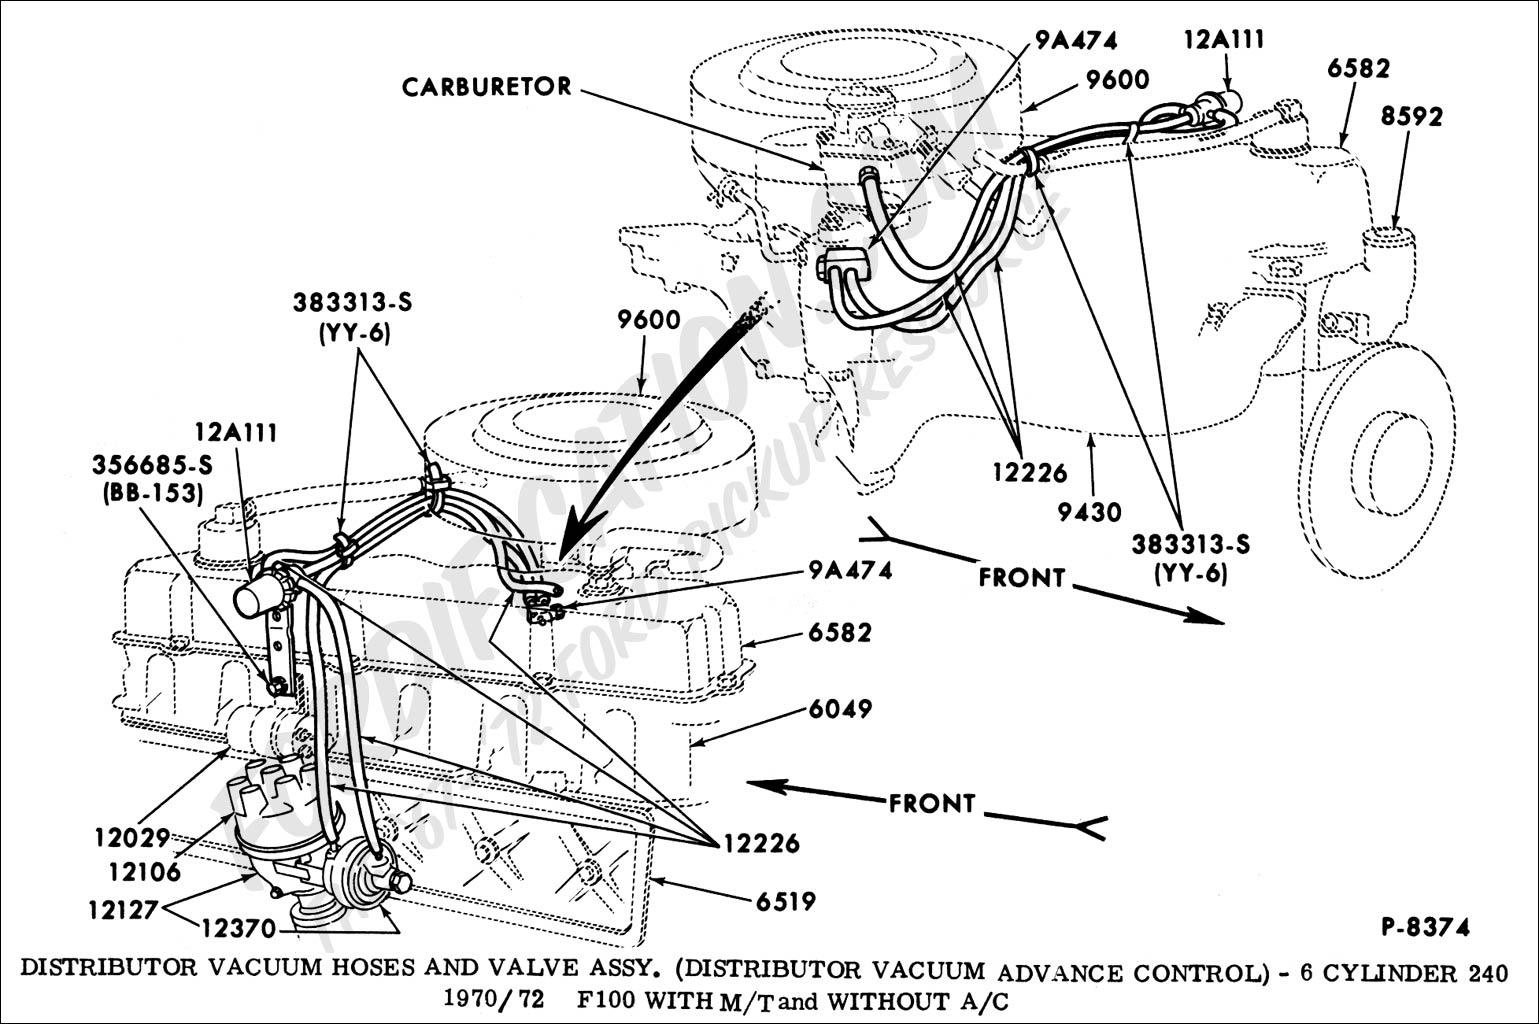 Ford 350 Econoline Van Wiring Diagram Will Be A Thing F550 Dump Truck Technical Drawings And Schematics Section I E 250